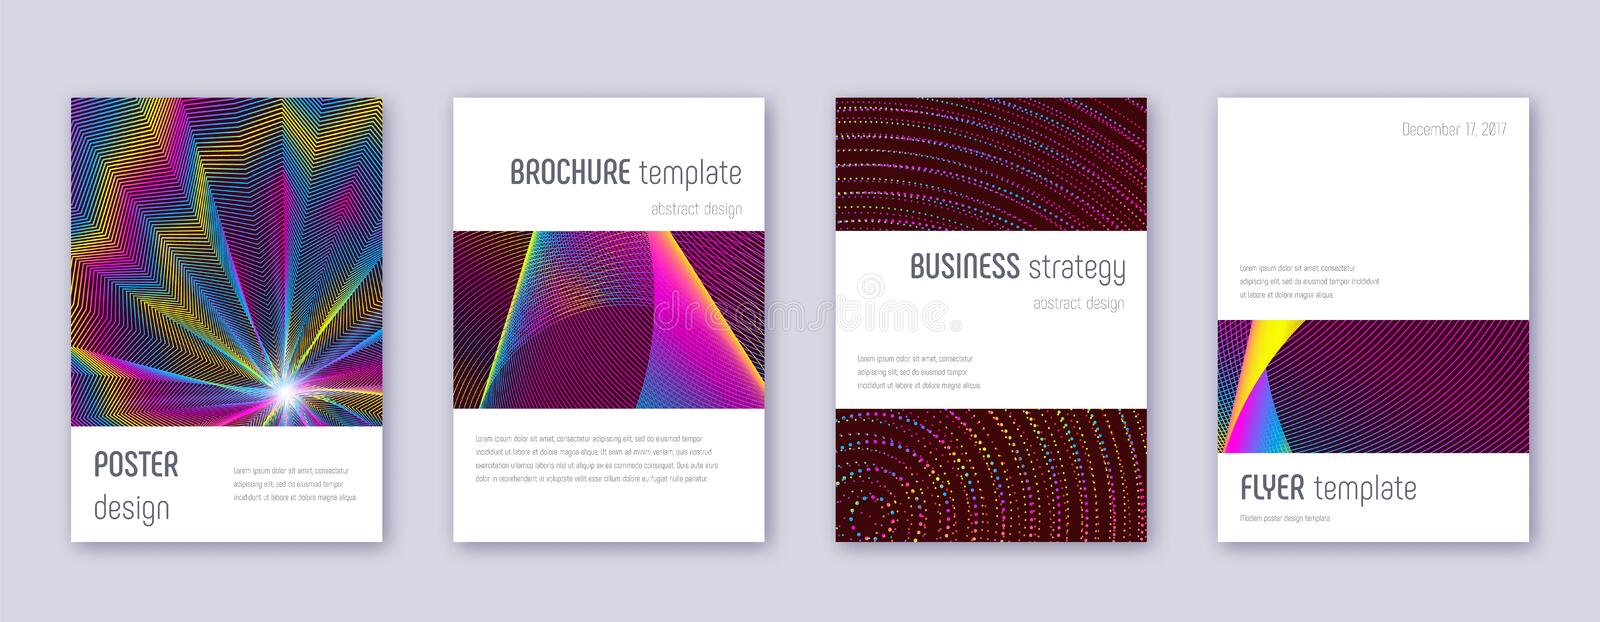 Minimalistic brochure design template set. Rainbow. Abstract lines on wine red background. Authentic brochure design. Beautiful catalog, poster, book template stock illustration